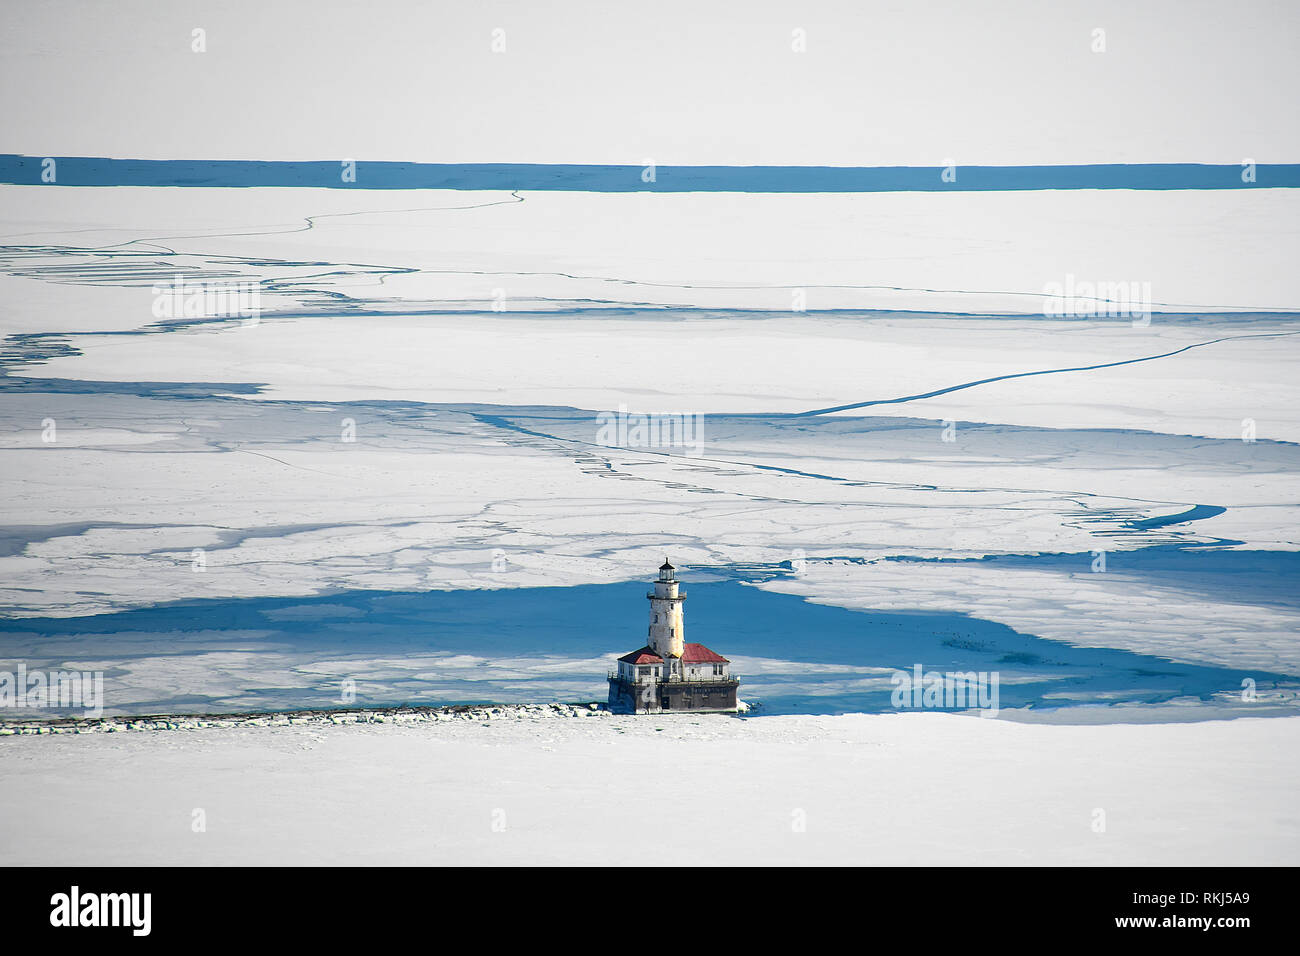 aerial view of Chicago lighthouse on Lake Michigan in ice and snow Stock Photo